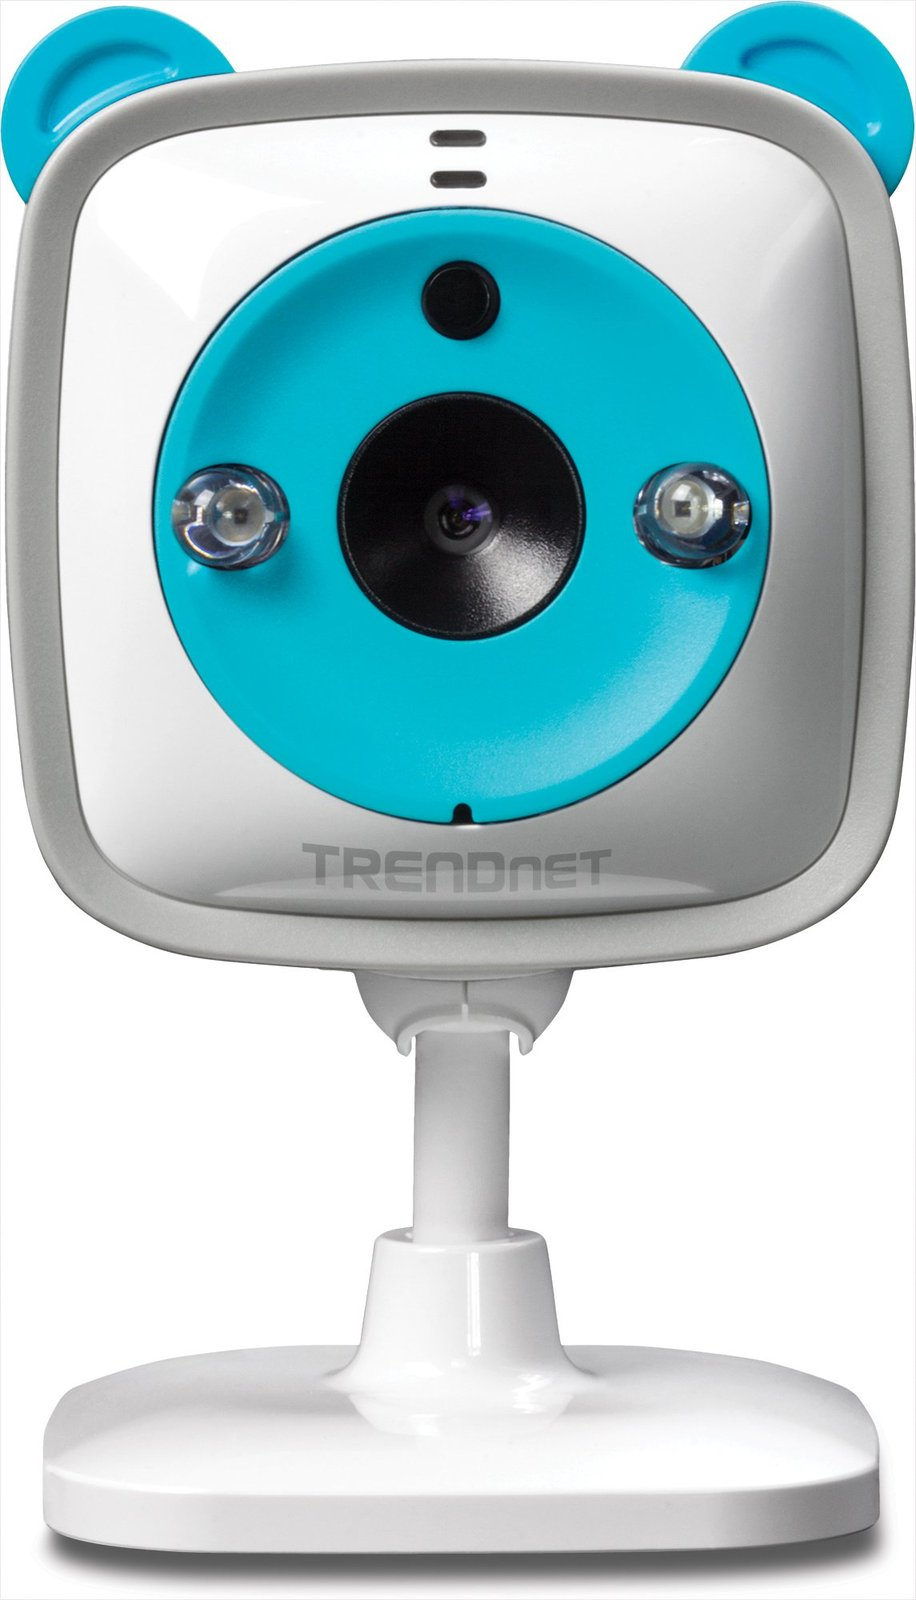 TRENDnet 720p HD Cloud Baby Cam, IP/Network, microSD Card slot, Wireless, Temper